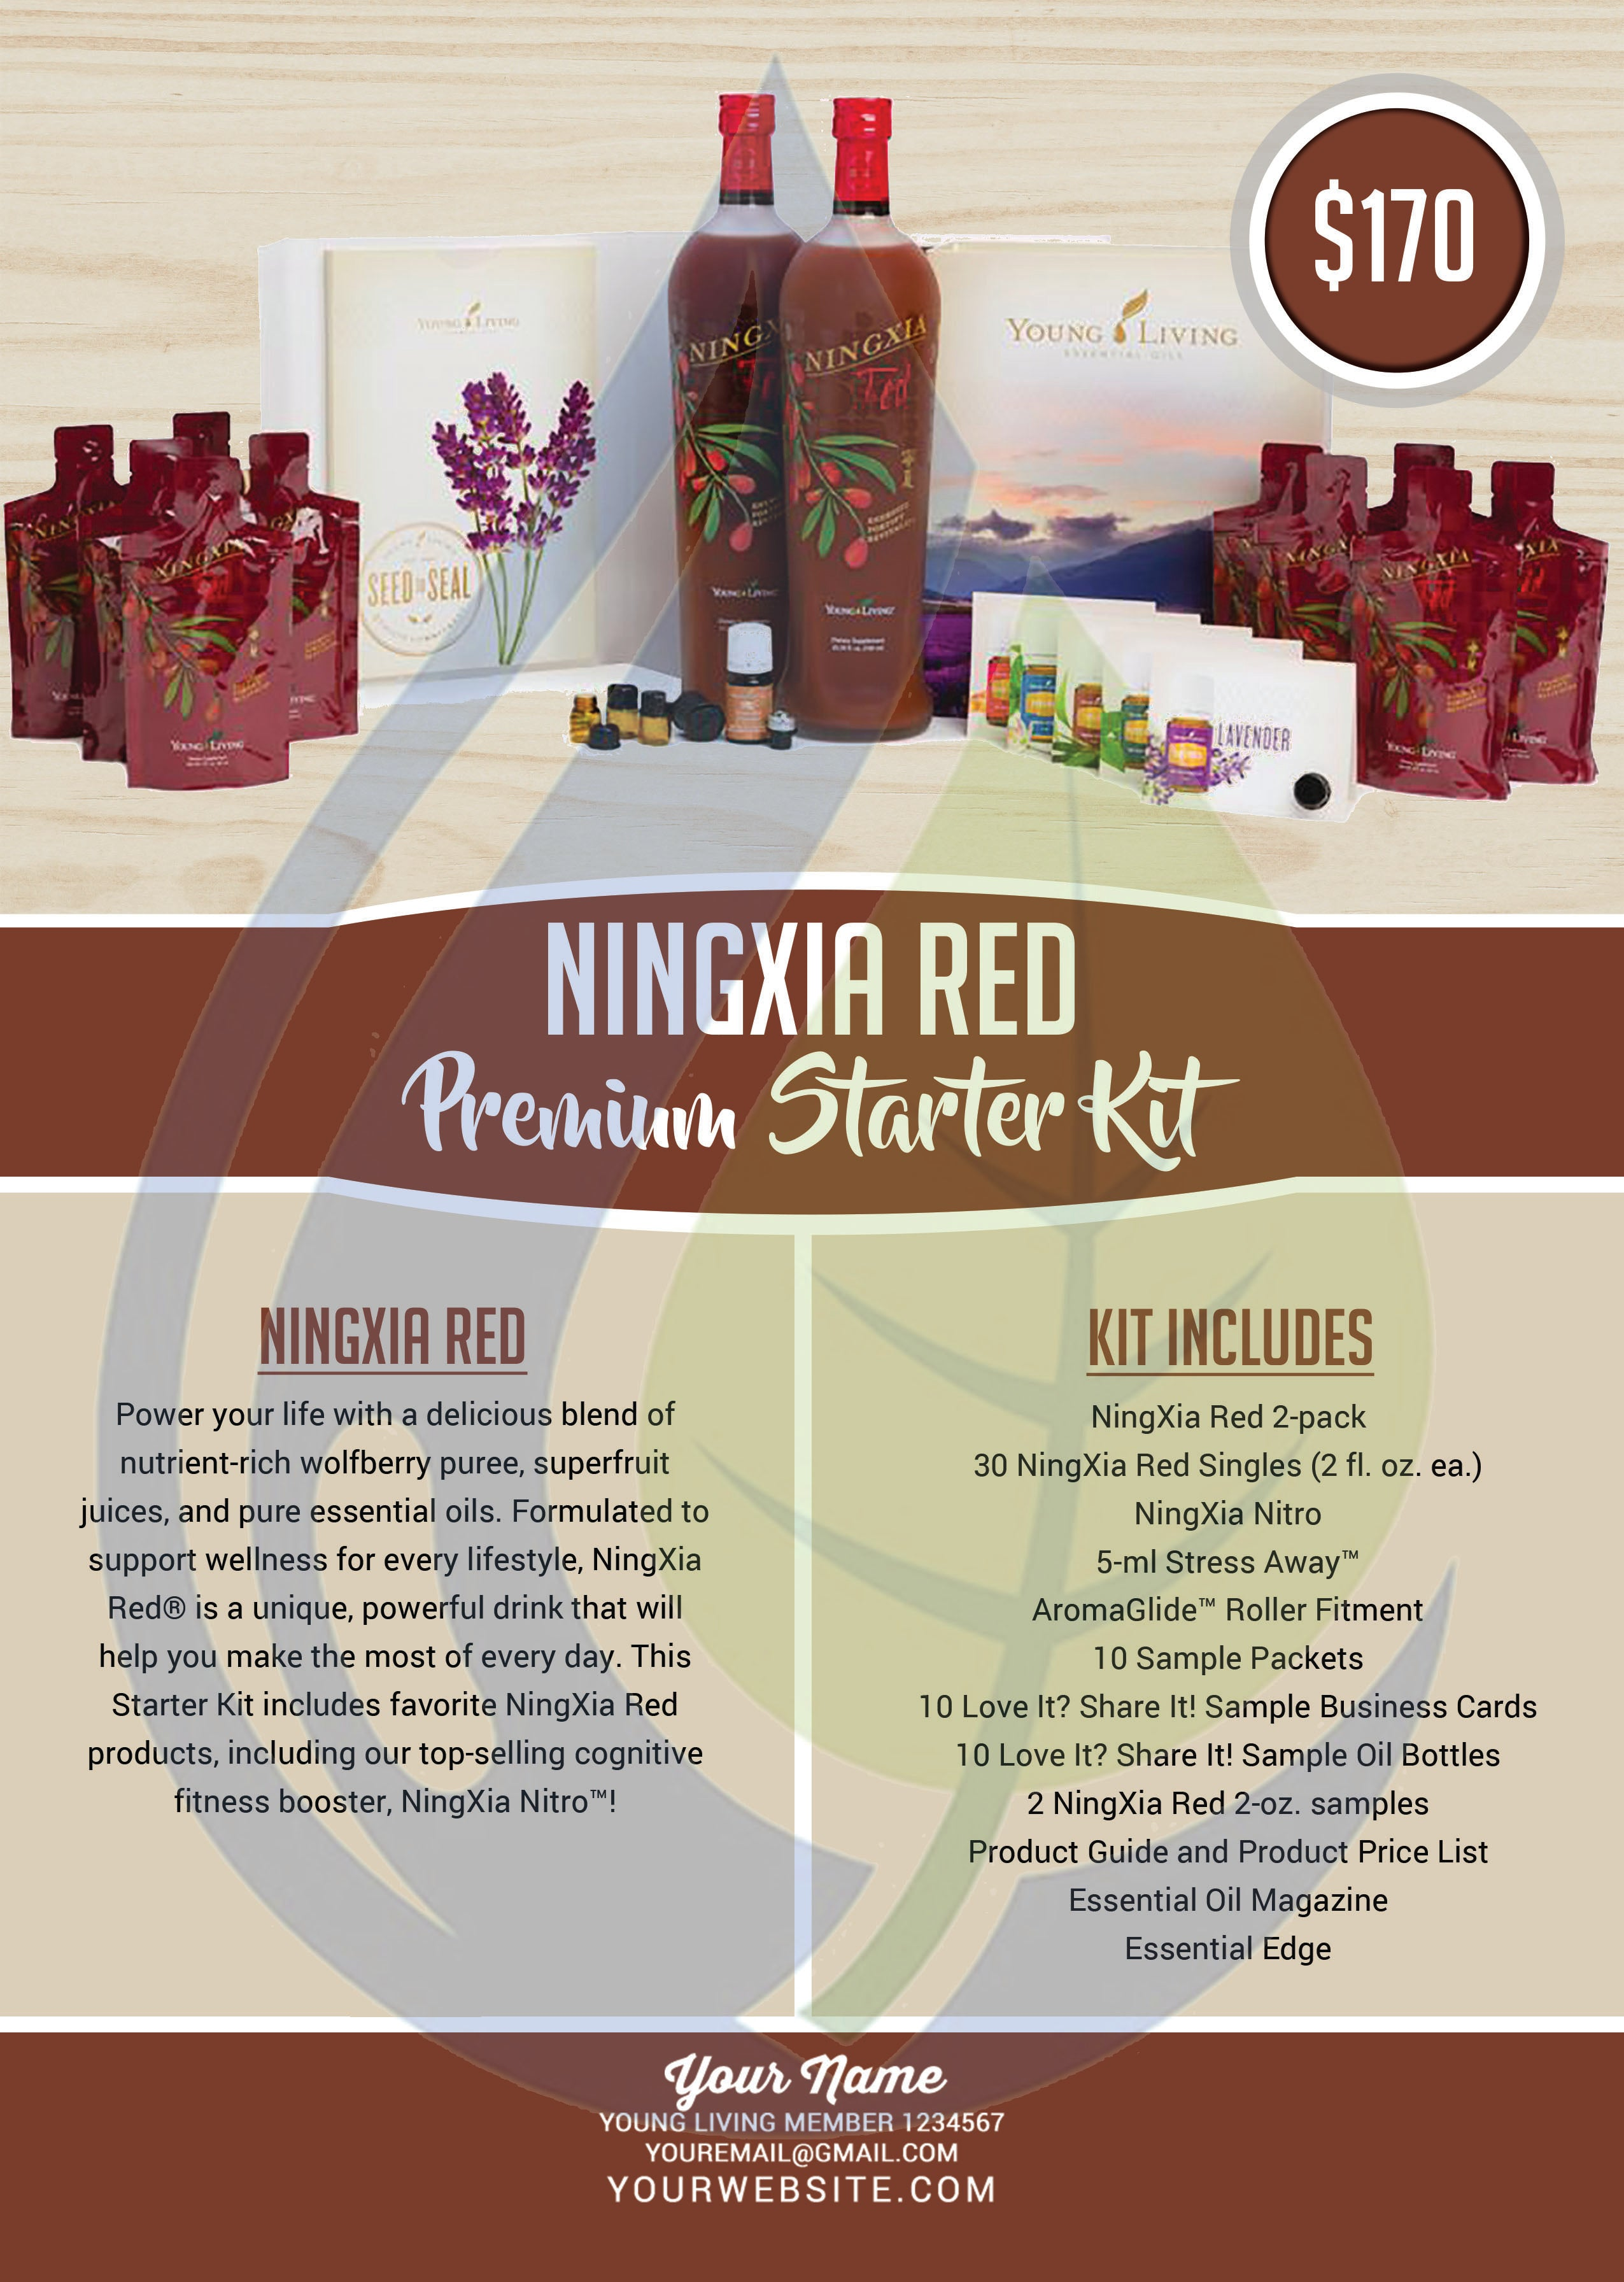 Ningxia Red Premium Starter Kit